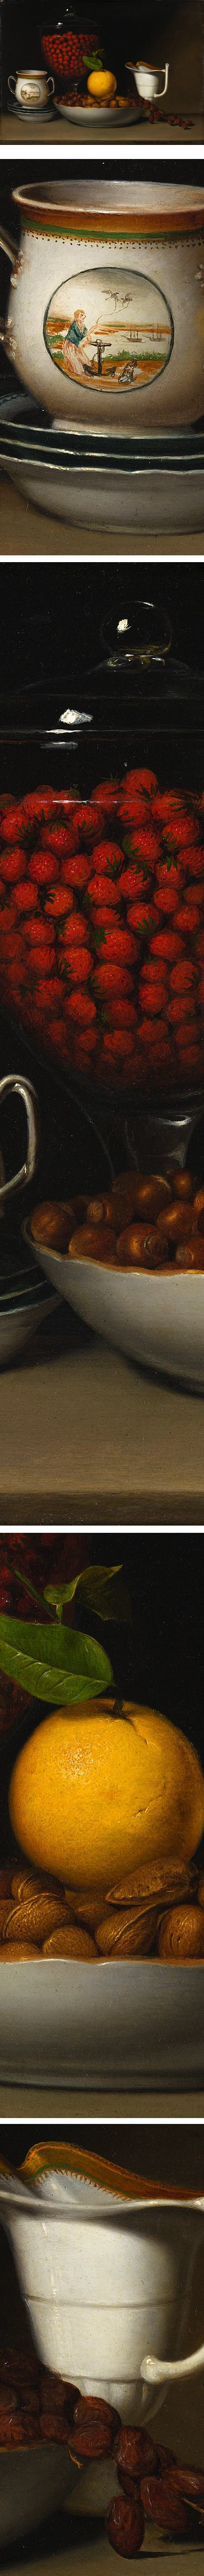 Still Life with Strawberries and Nuts, Raphaelle Peale